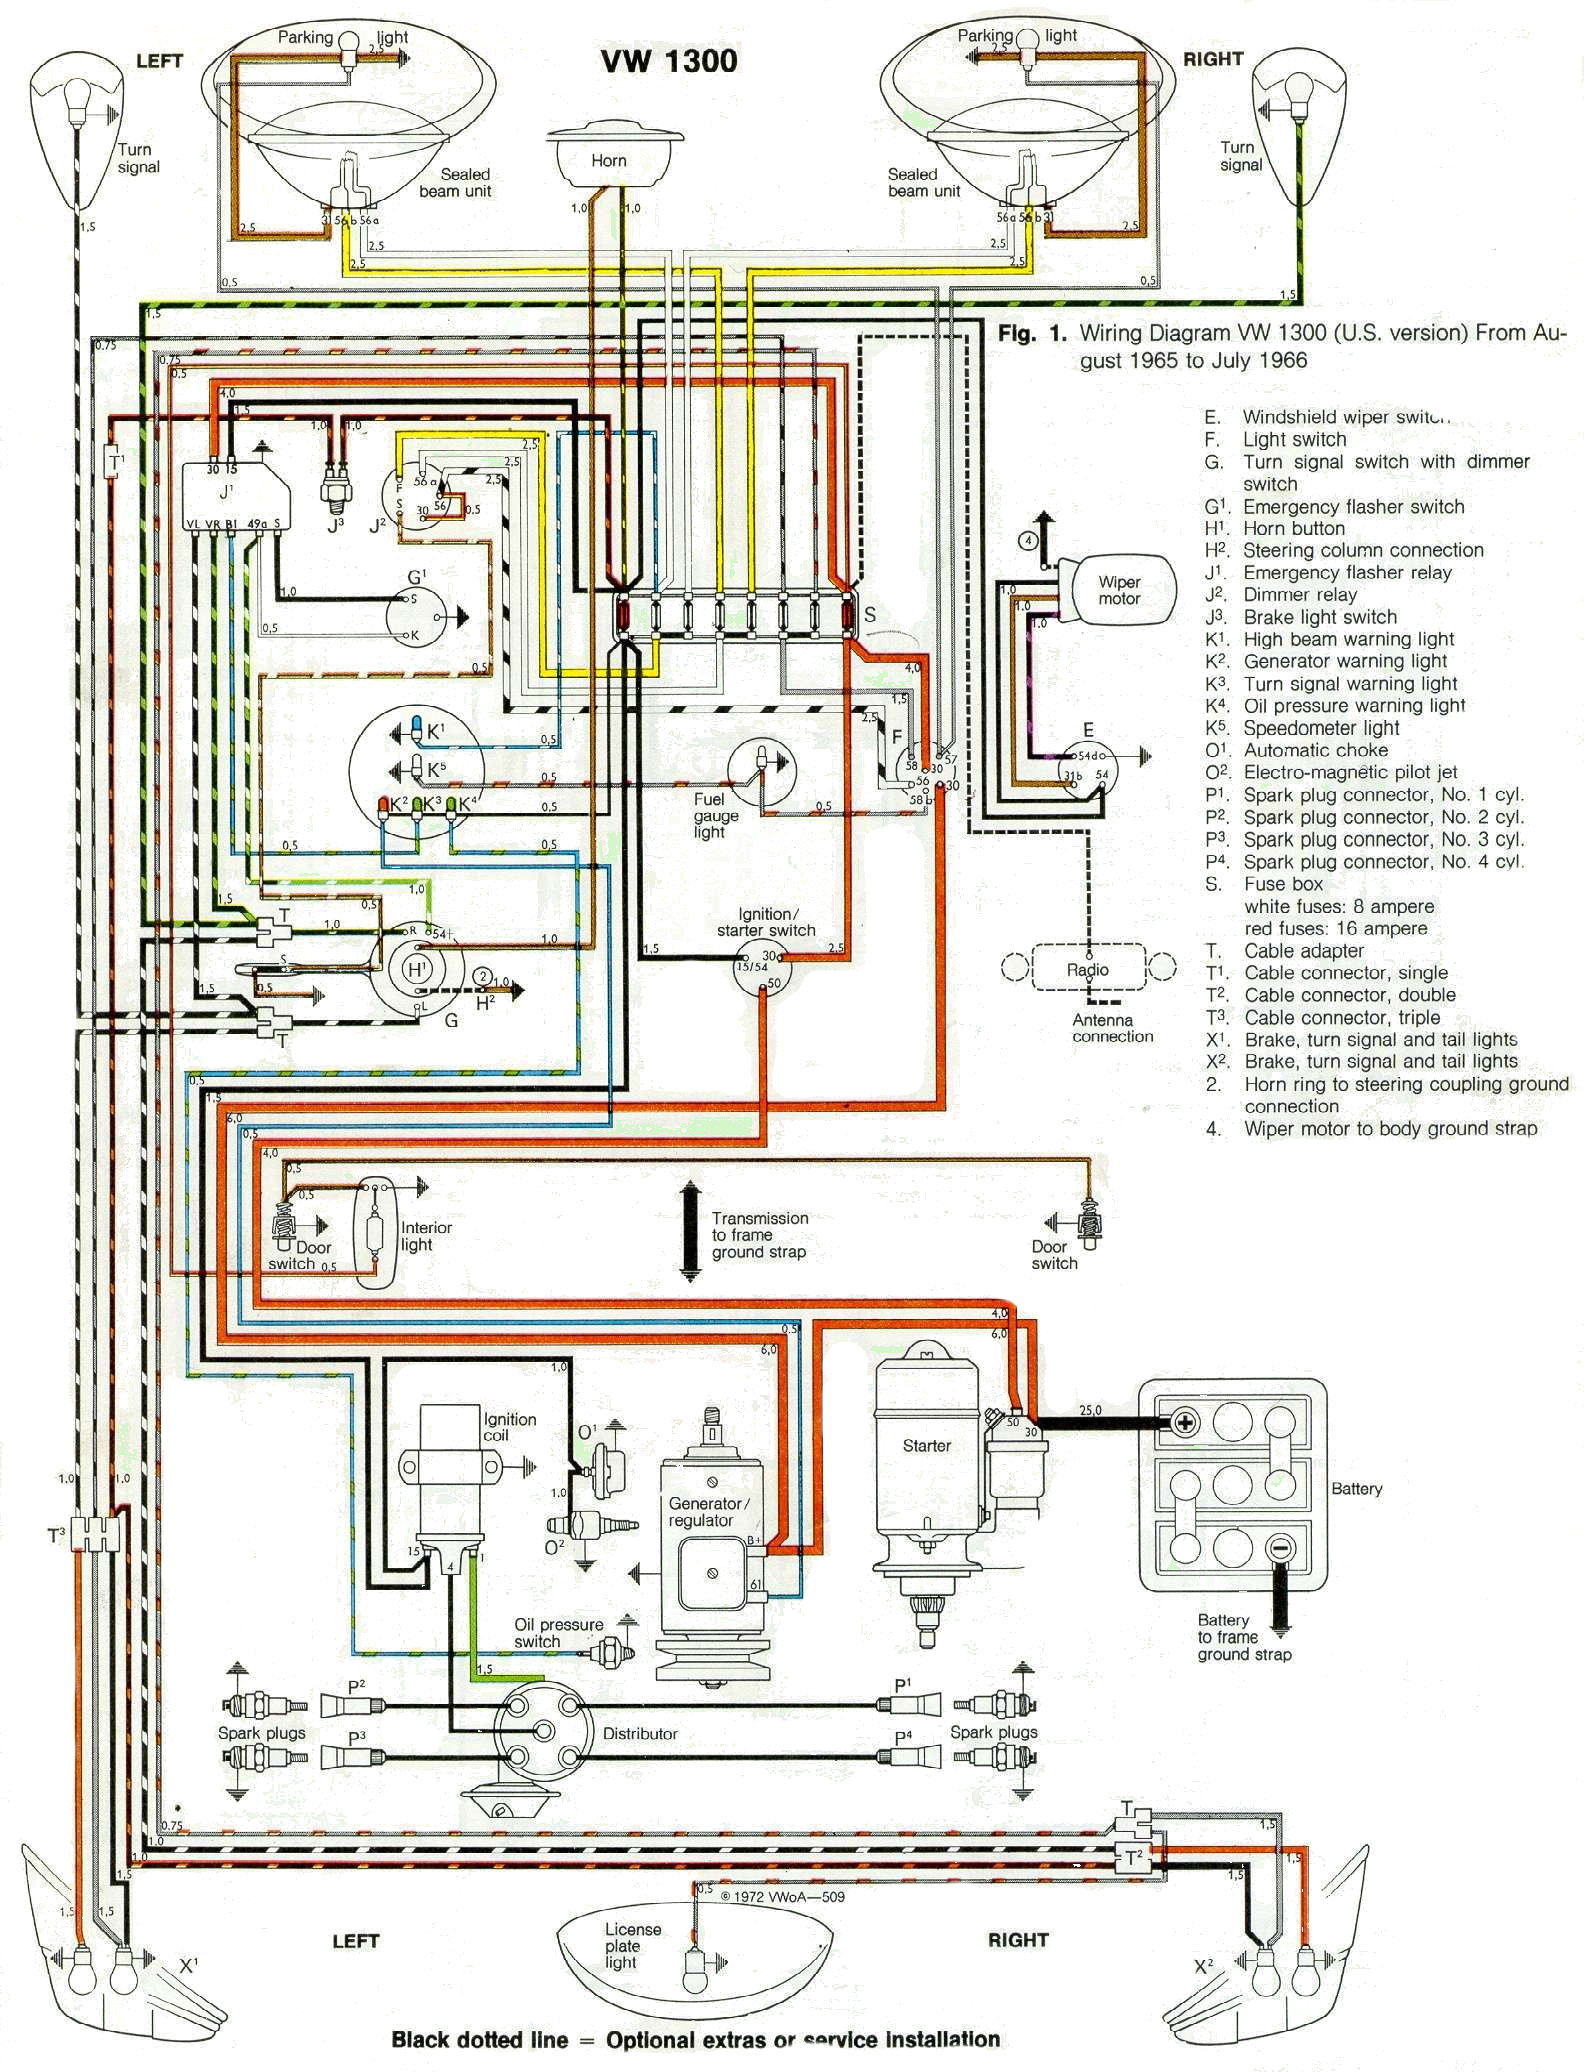 Wiring Diagram Vw Polo 2000 The Portal And Forum Of Diagrams Site Rh 47 Geraldsorger De Beetle